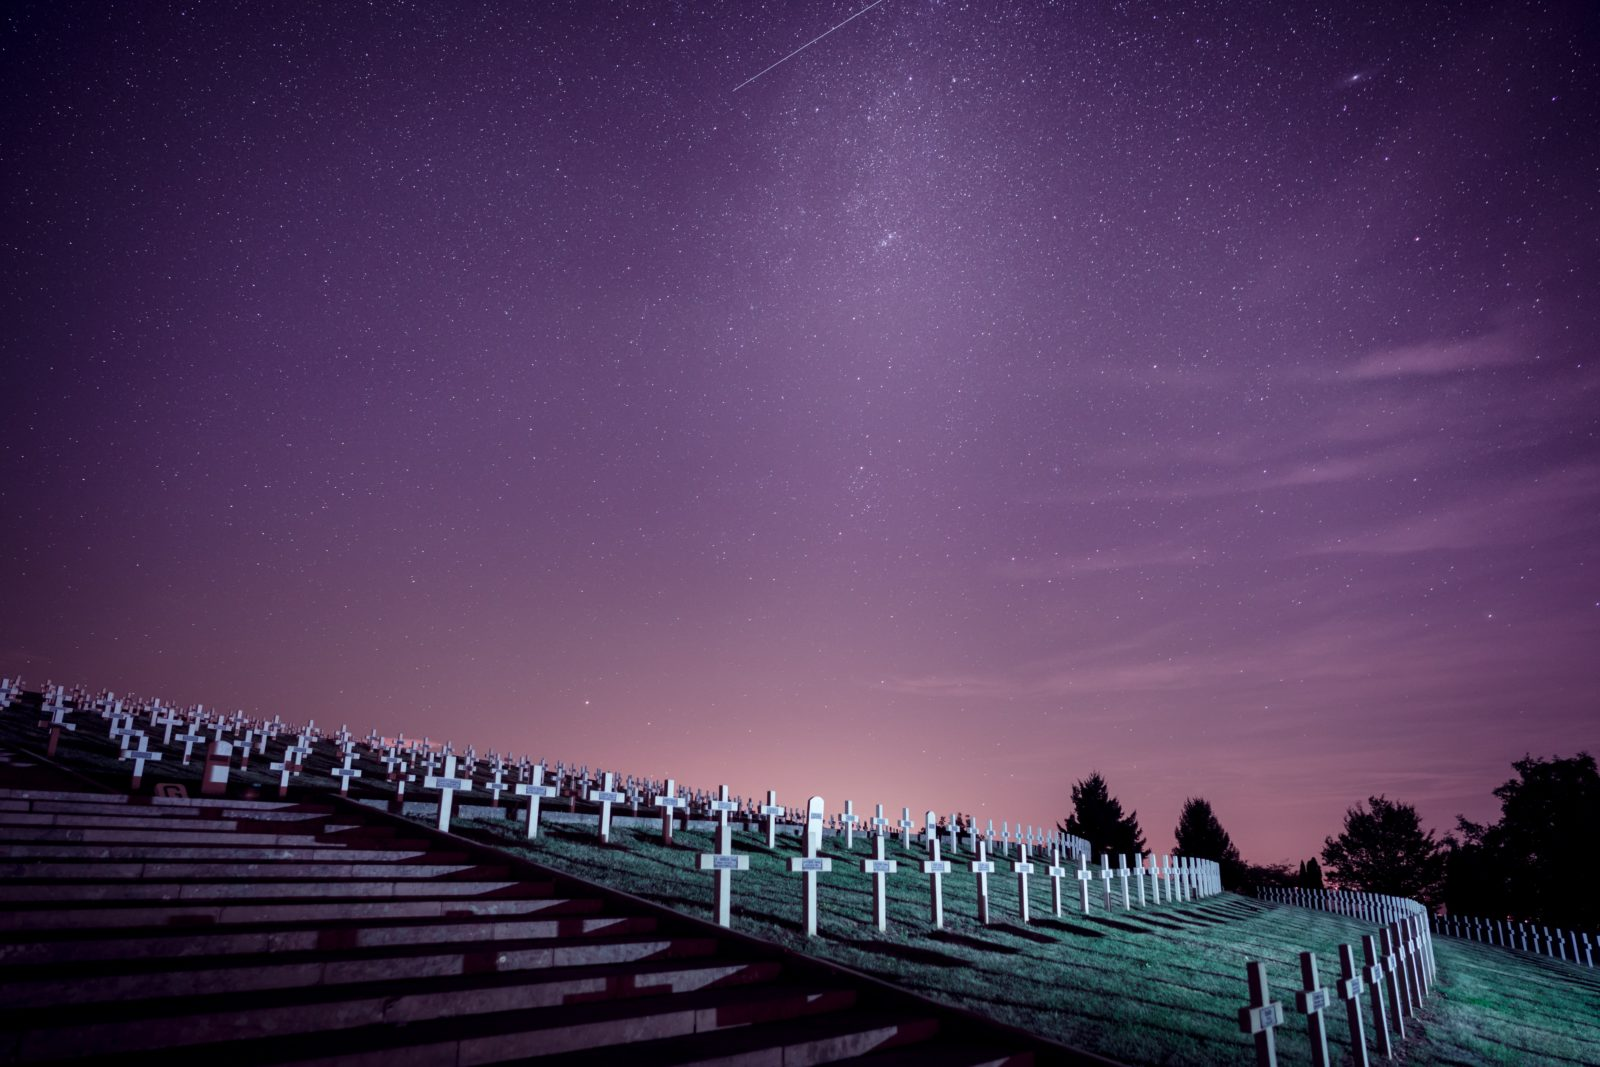 rows of graves beneath a night sky